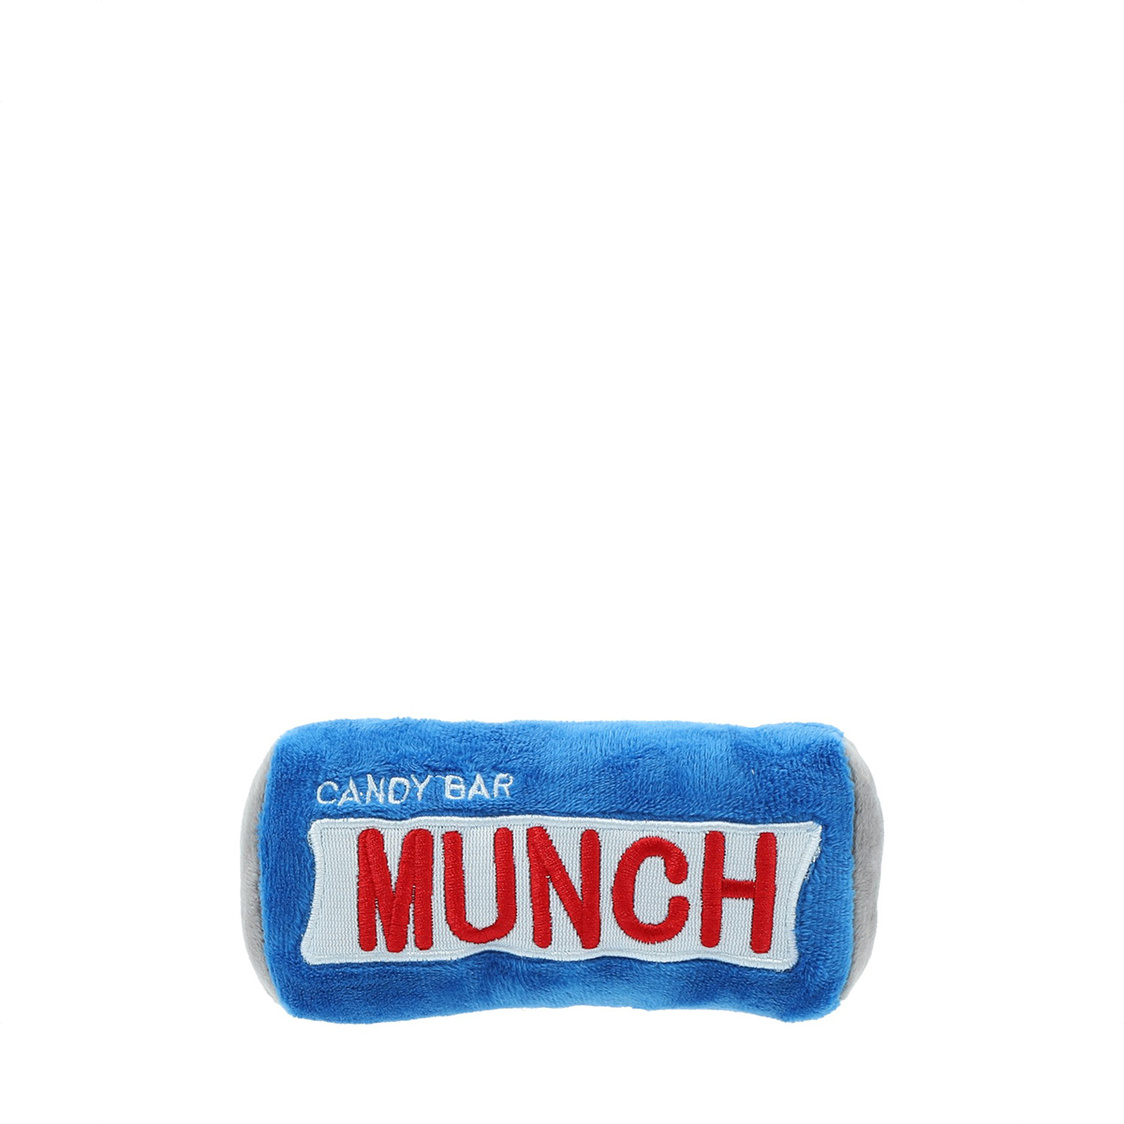 Munchbar Plush Toy